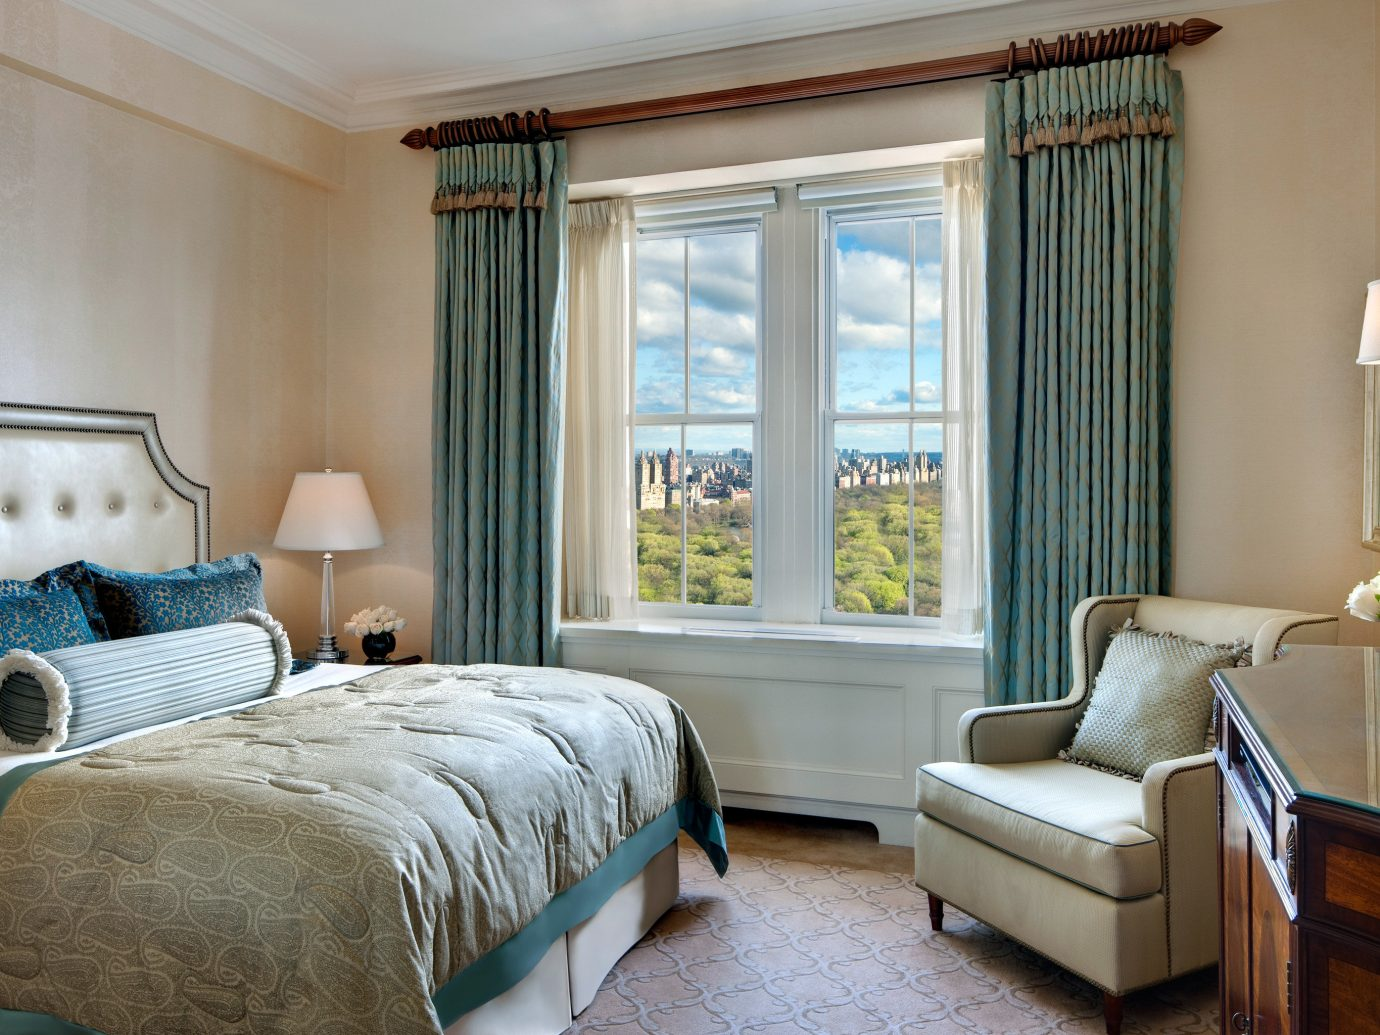 Bedroom City Hotels Luxury Luxury Travel Romantic Hotels Scenic views indoor sofa wall room floor bed window property hotel Living living room home estate interior design Suite cottage real estate green furniture window covering pillow curtain window treatment decorated lamp containing tan